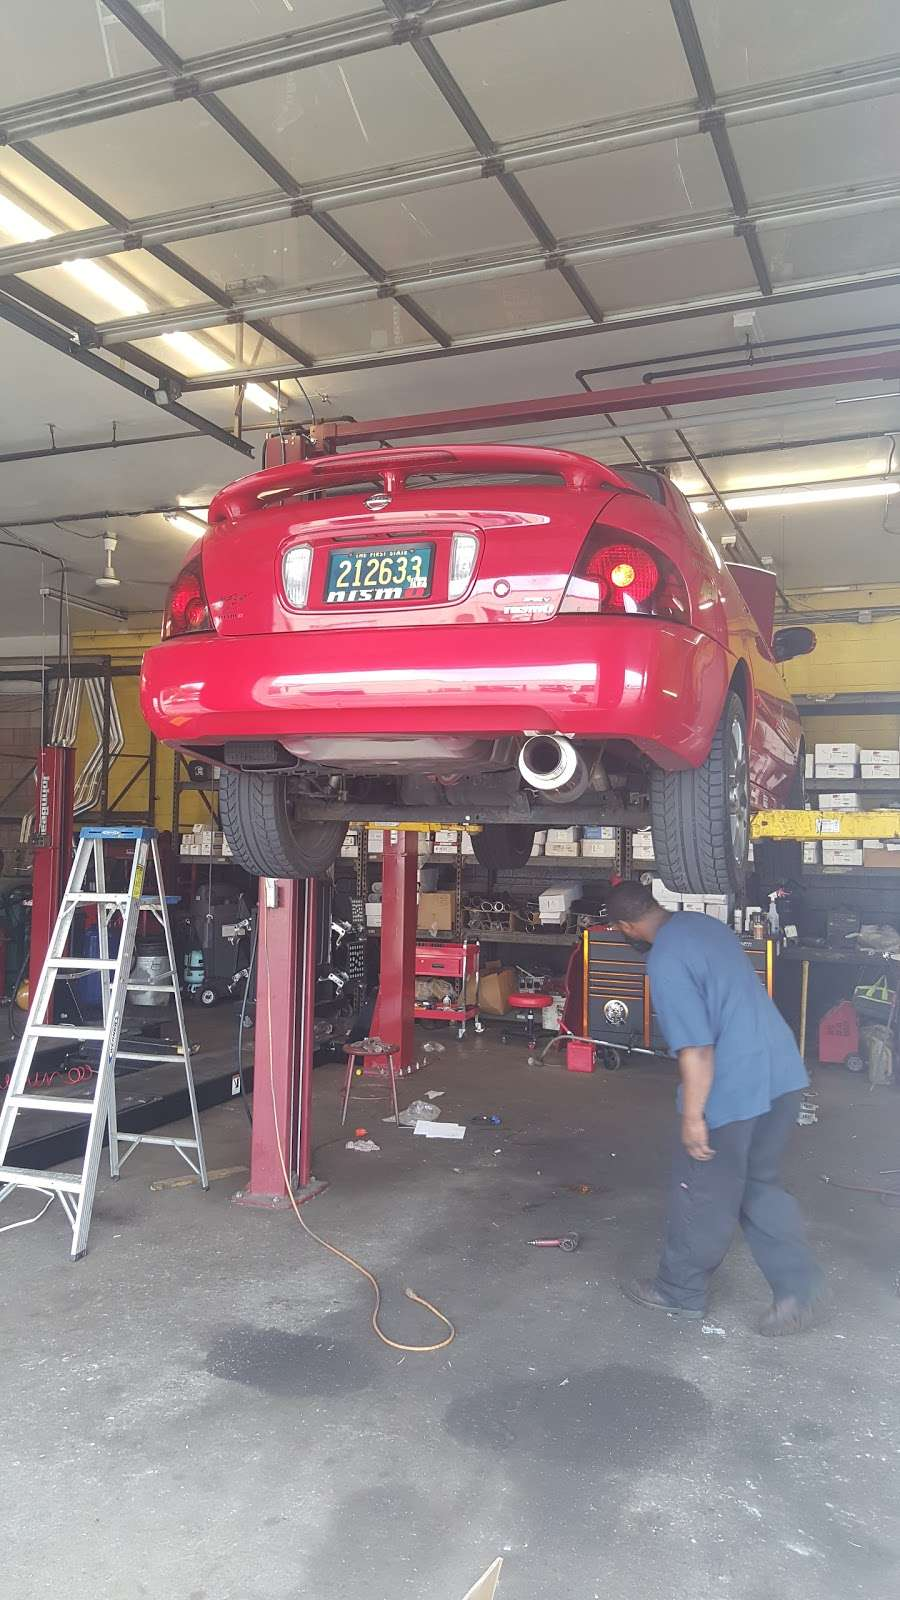 Meineke Car Care Center - car repair  | Photo 6 of 10 | Address: 120 N Dupont Hwy, New Castle, DE 19720, USA | Phone: (302) 414-0450